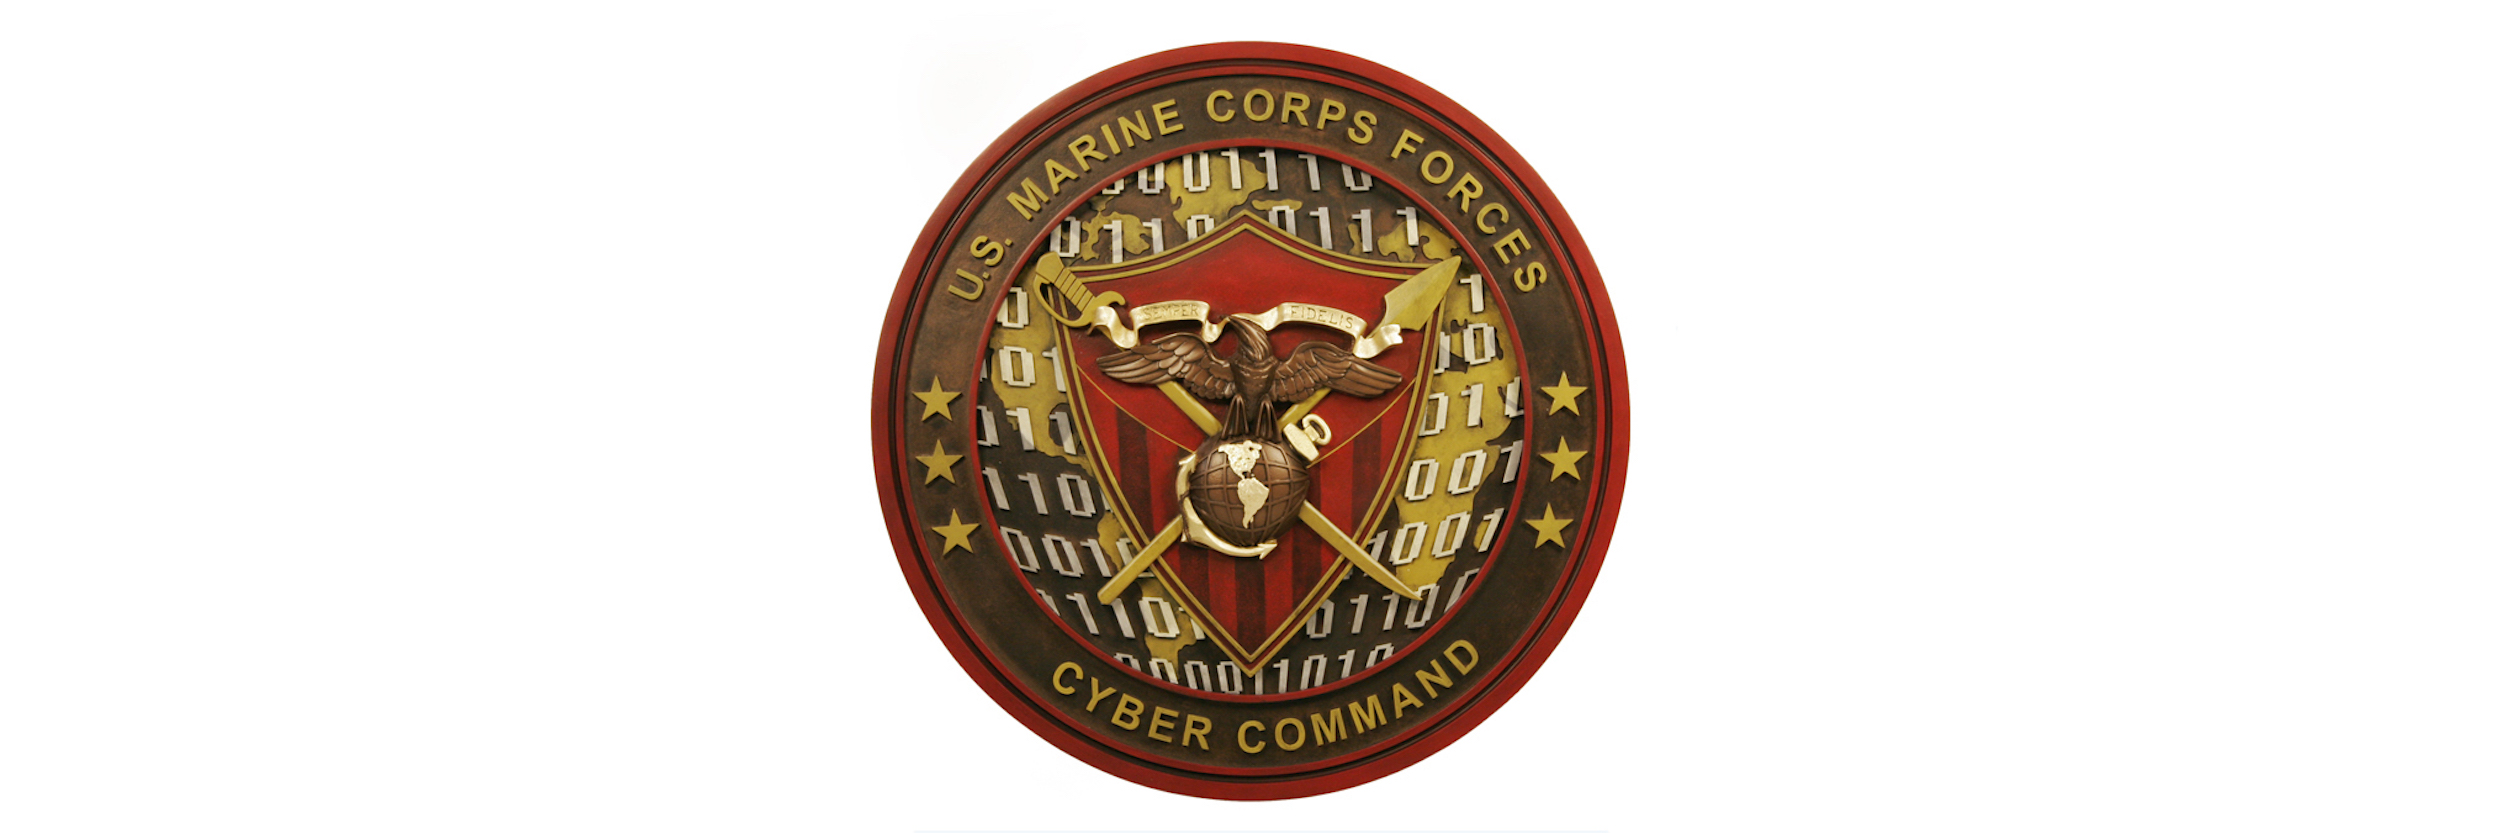 cyber-comman-marines-signbanner1 copy.jpg